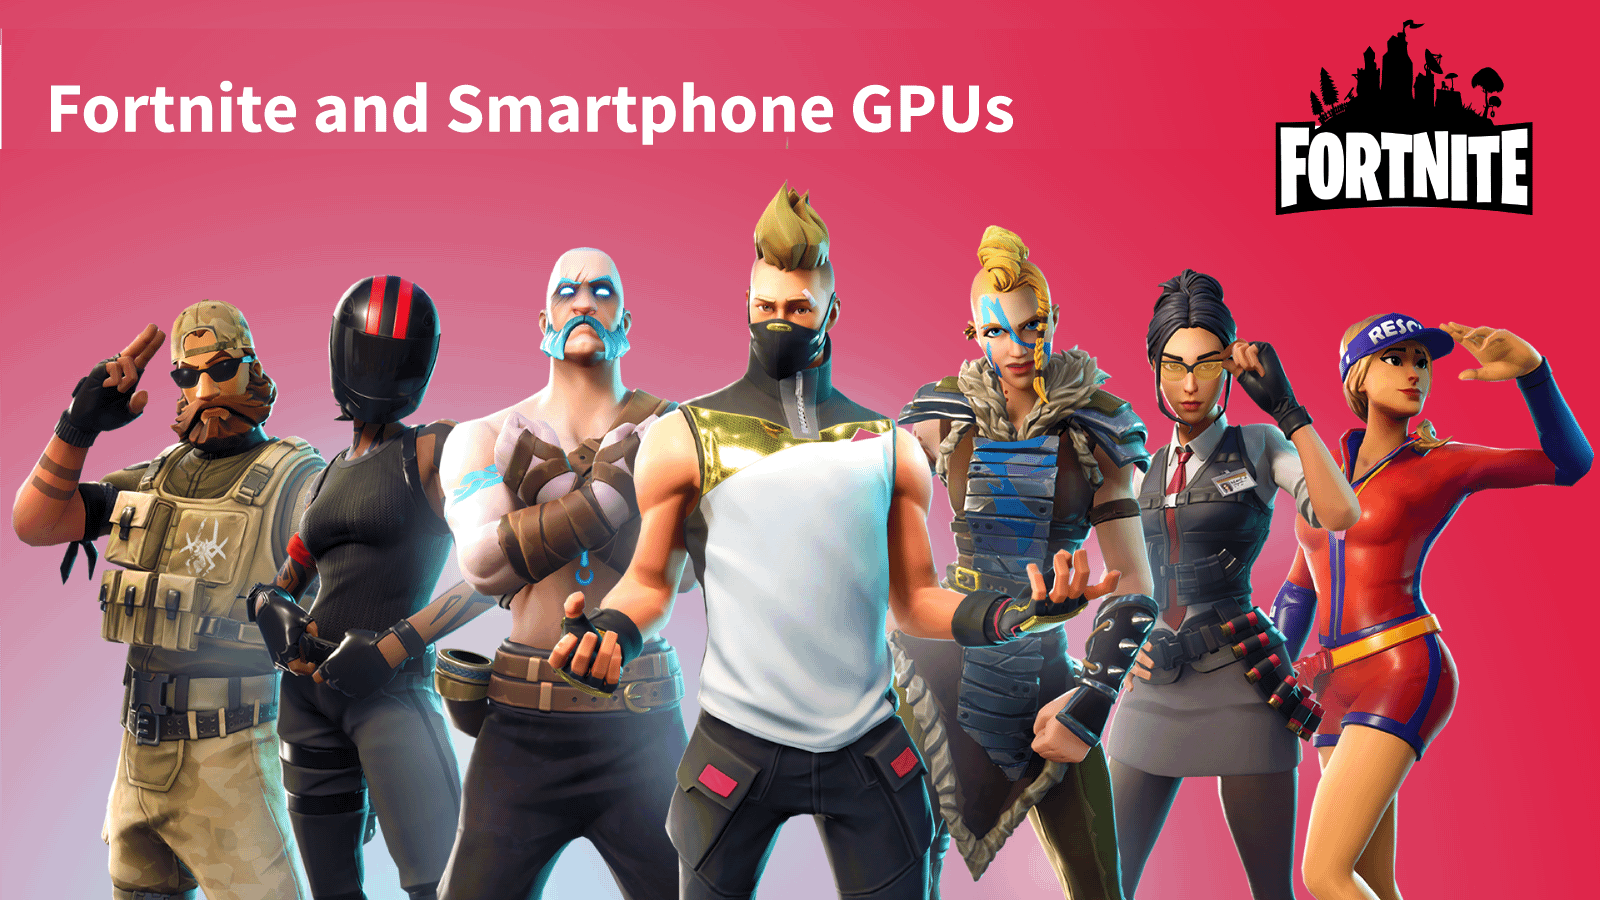 Fortnite GPU Requirements for Smartphone